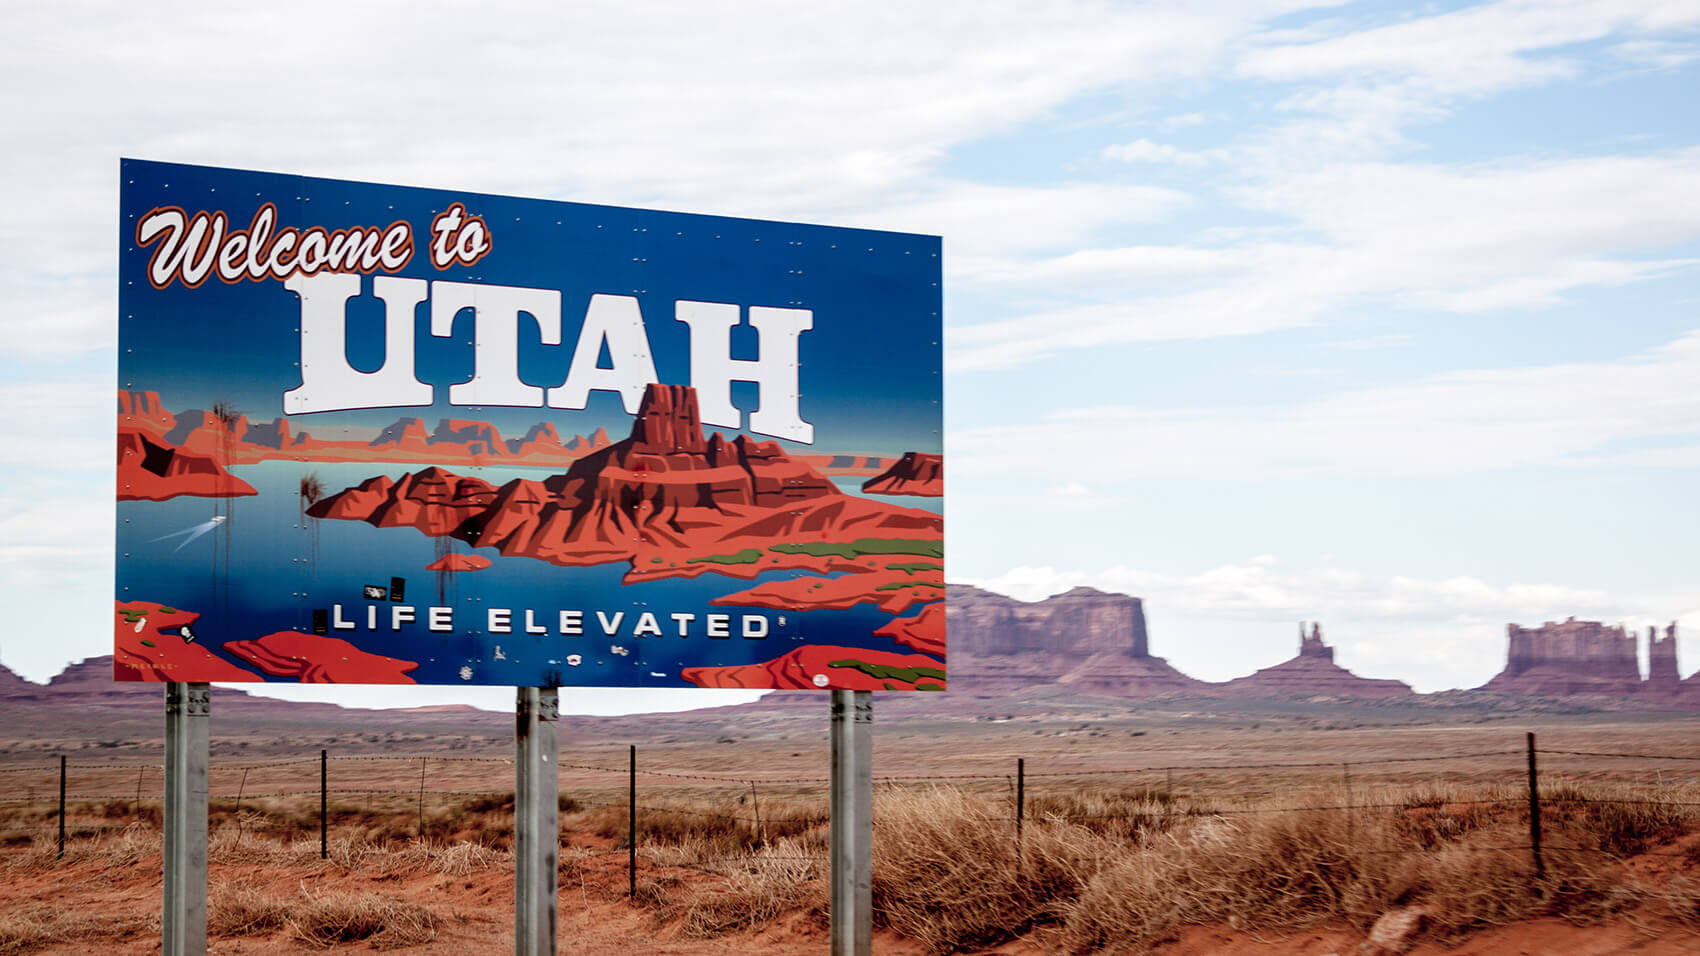 Entering Utah by Monument Valley